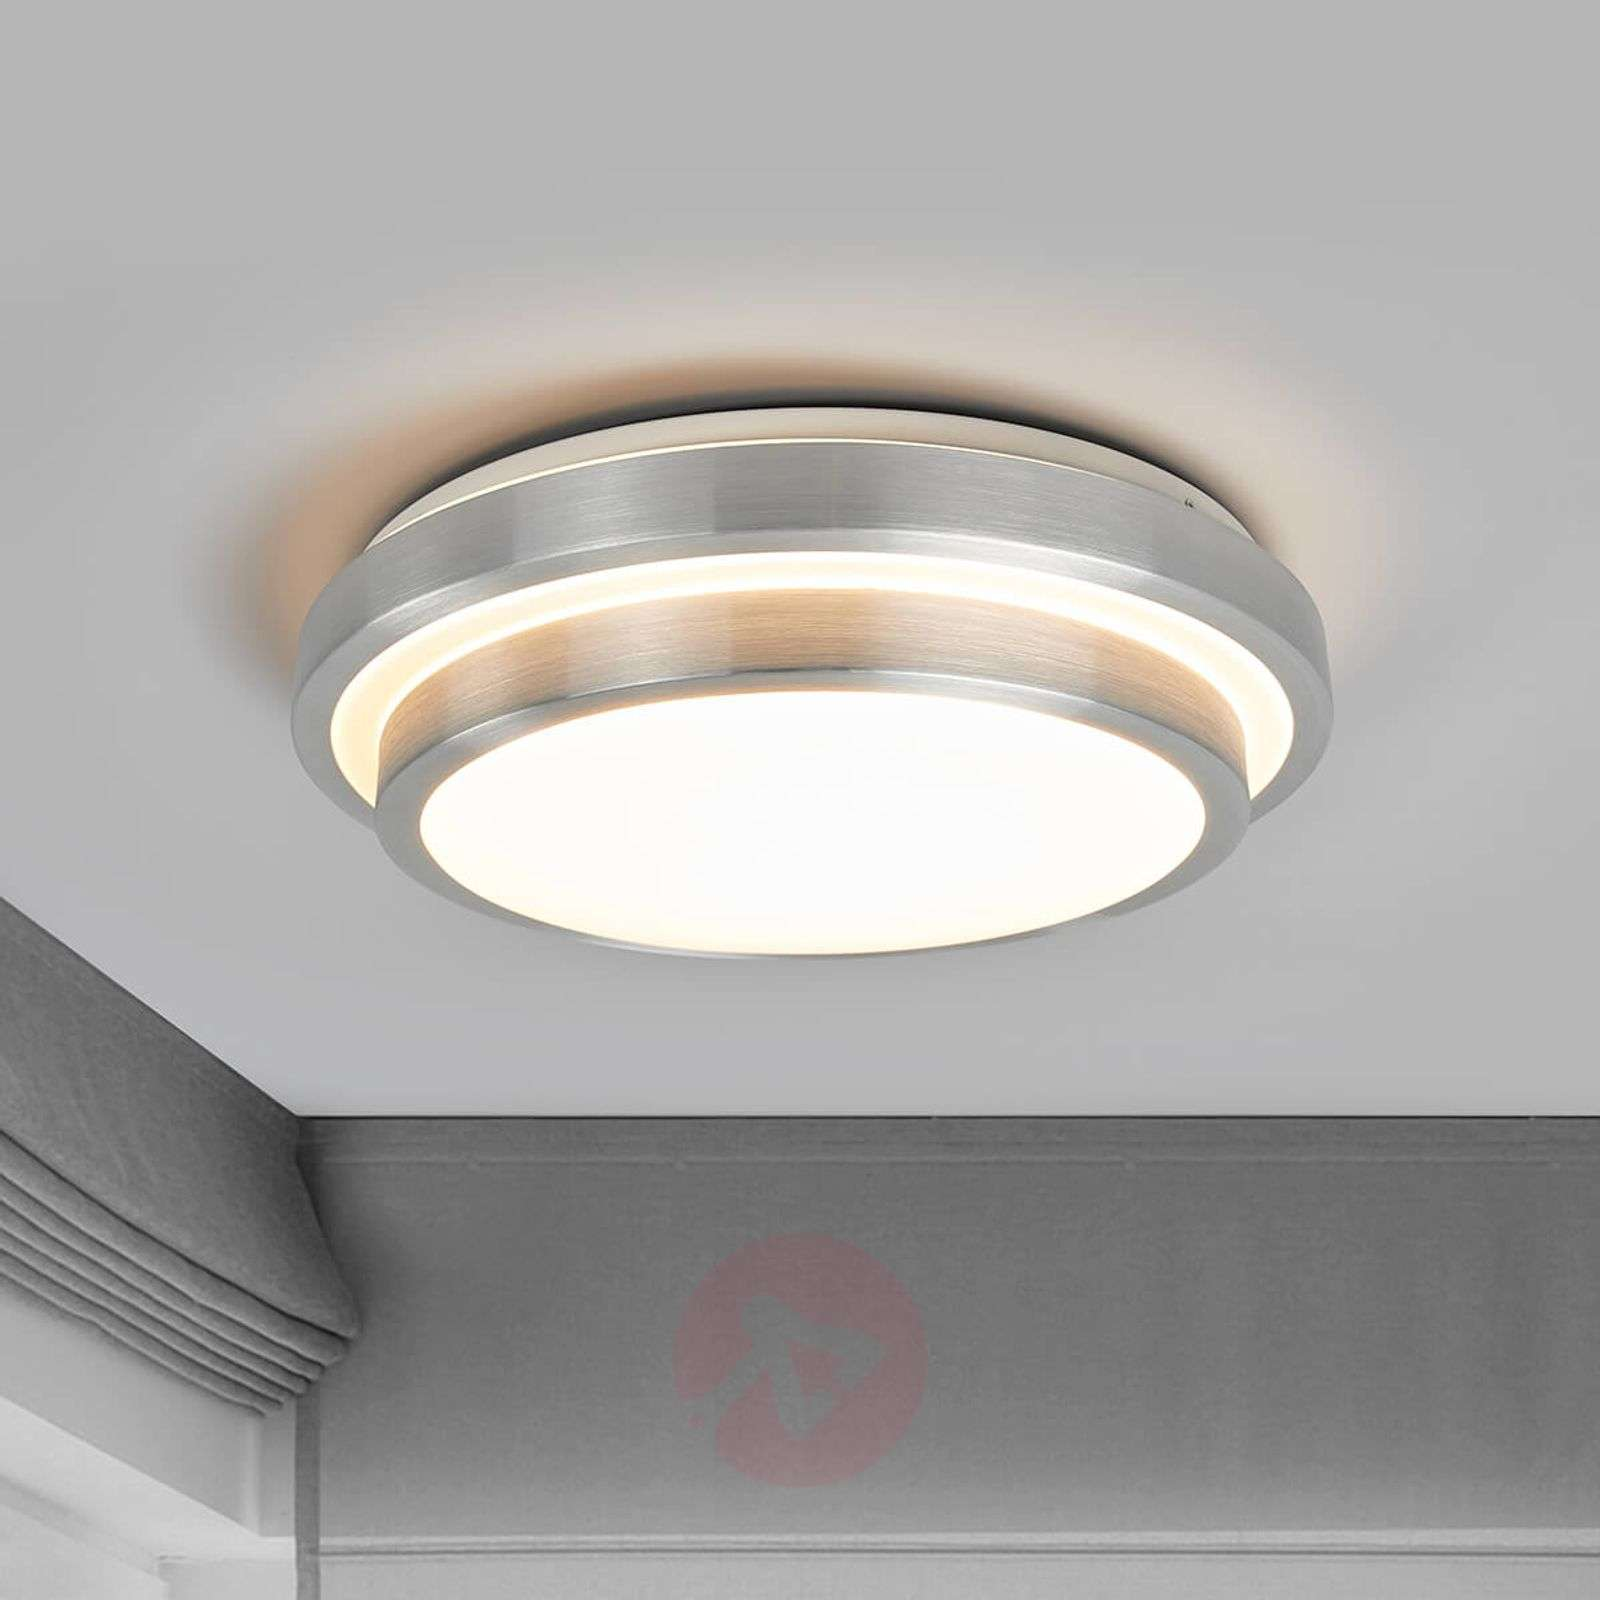 Bright LED ceiling lamp Huberta-9974028-01